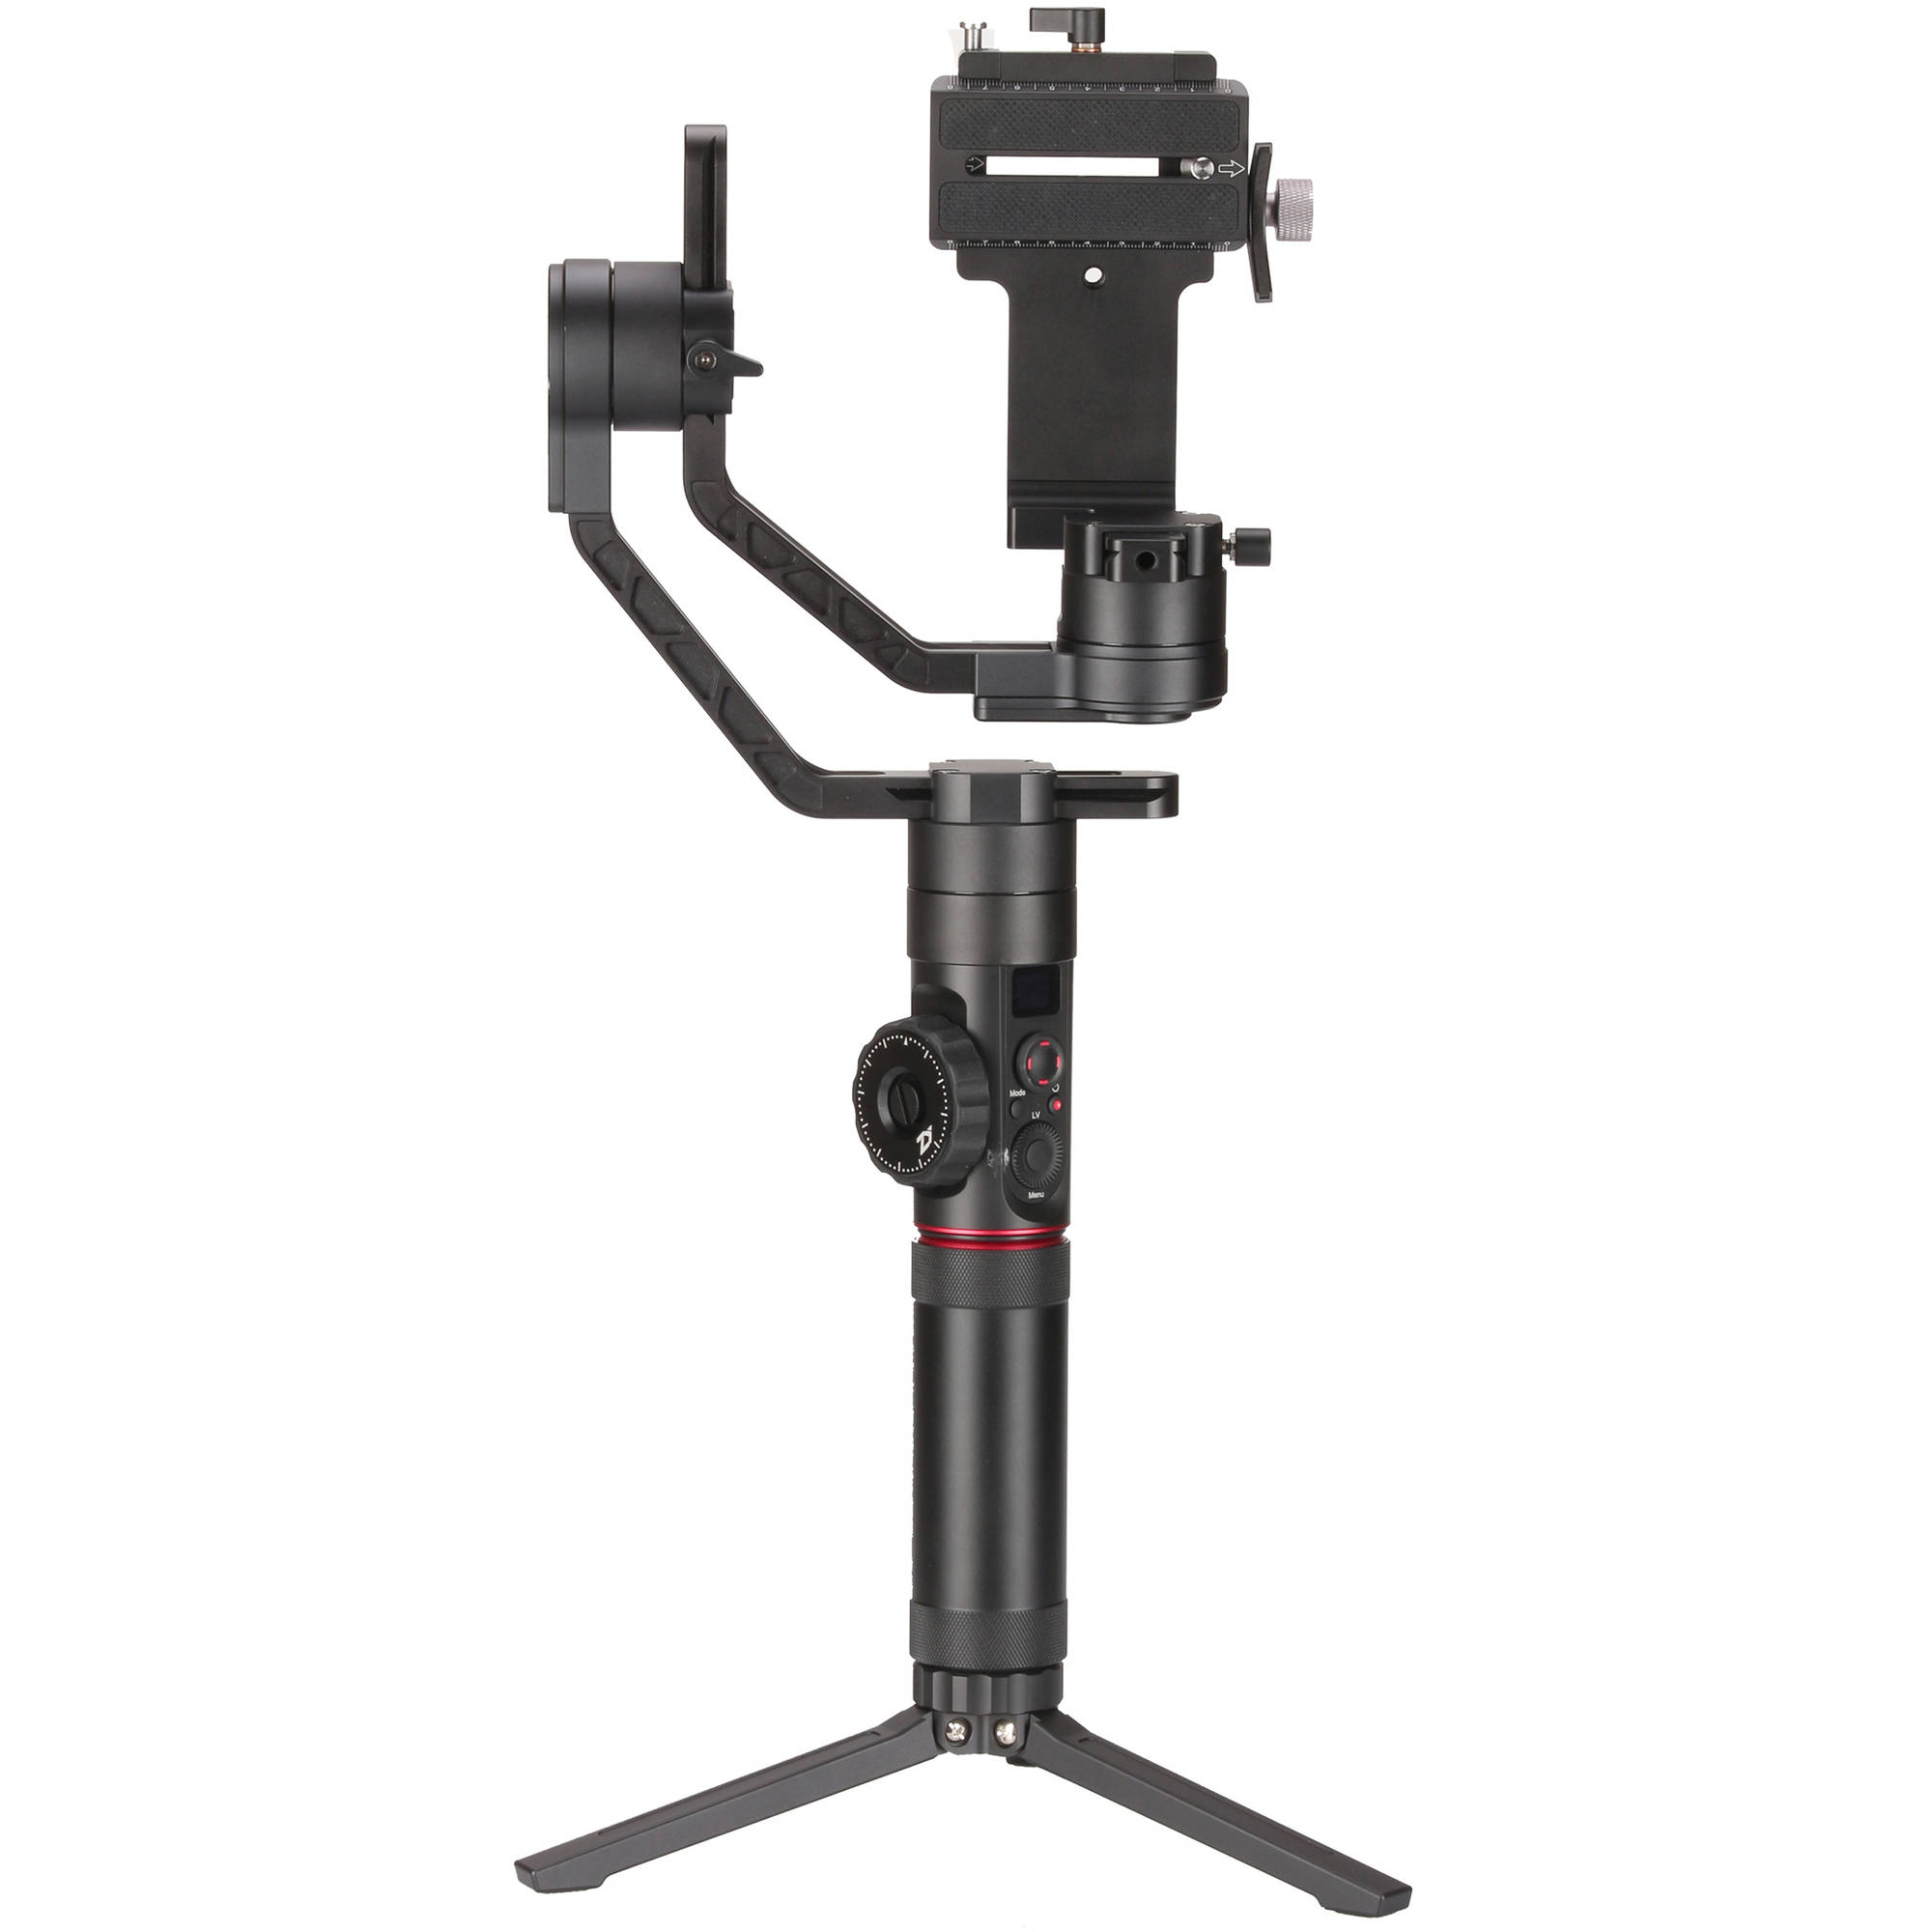 The  Crane  is an awesome travel Gimbal